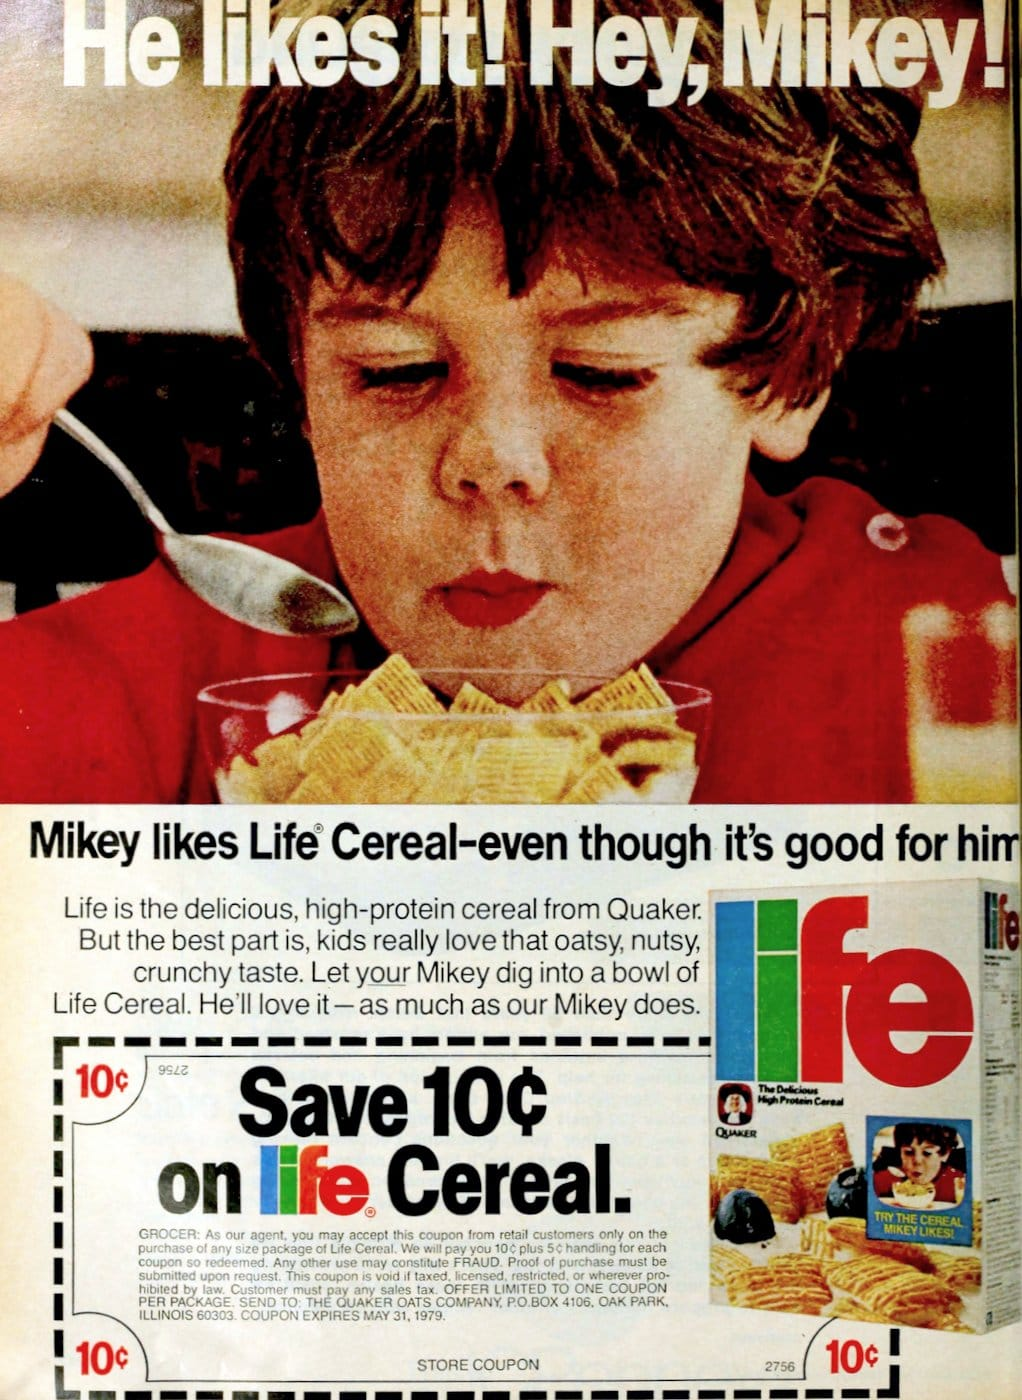 He likes it - Hey Mikey - Life cereal (1978)